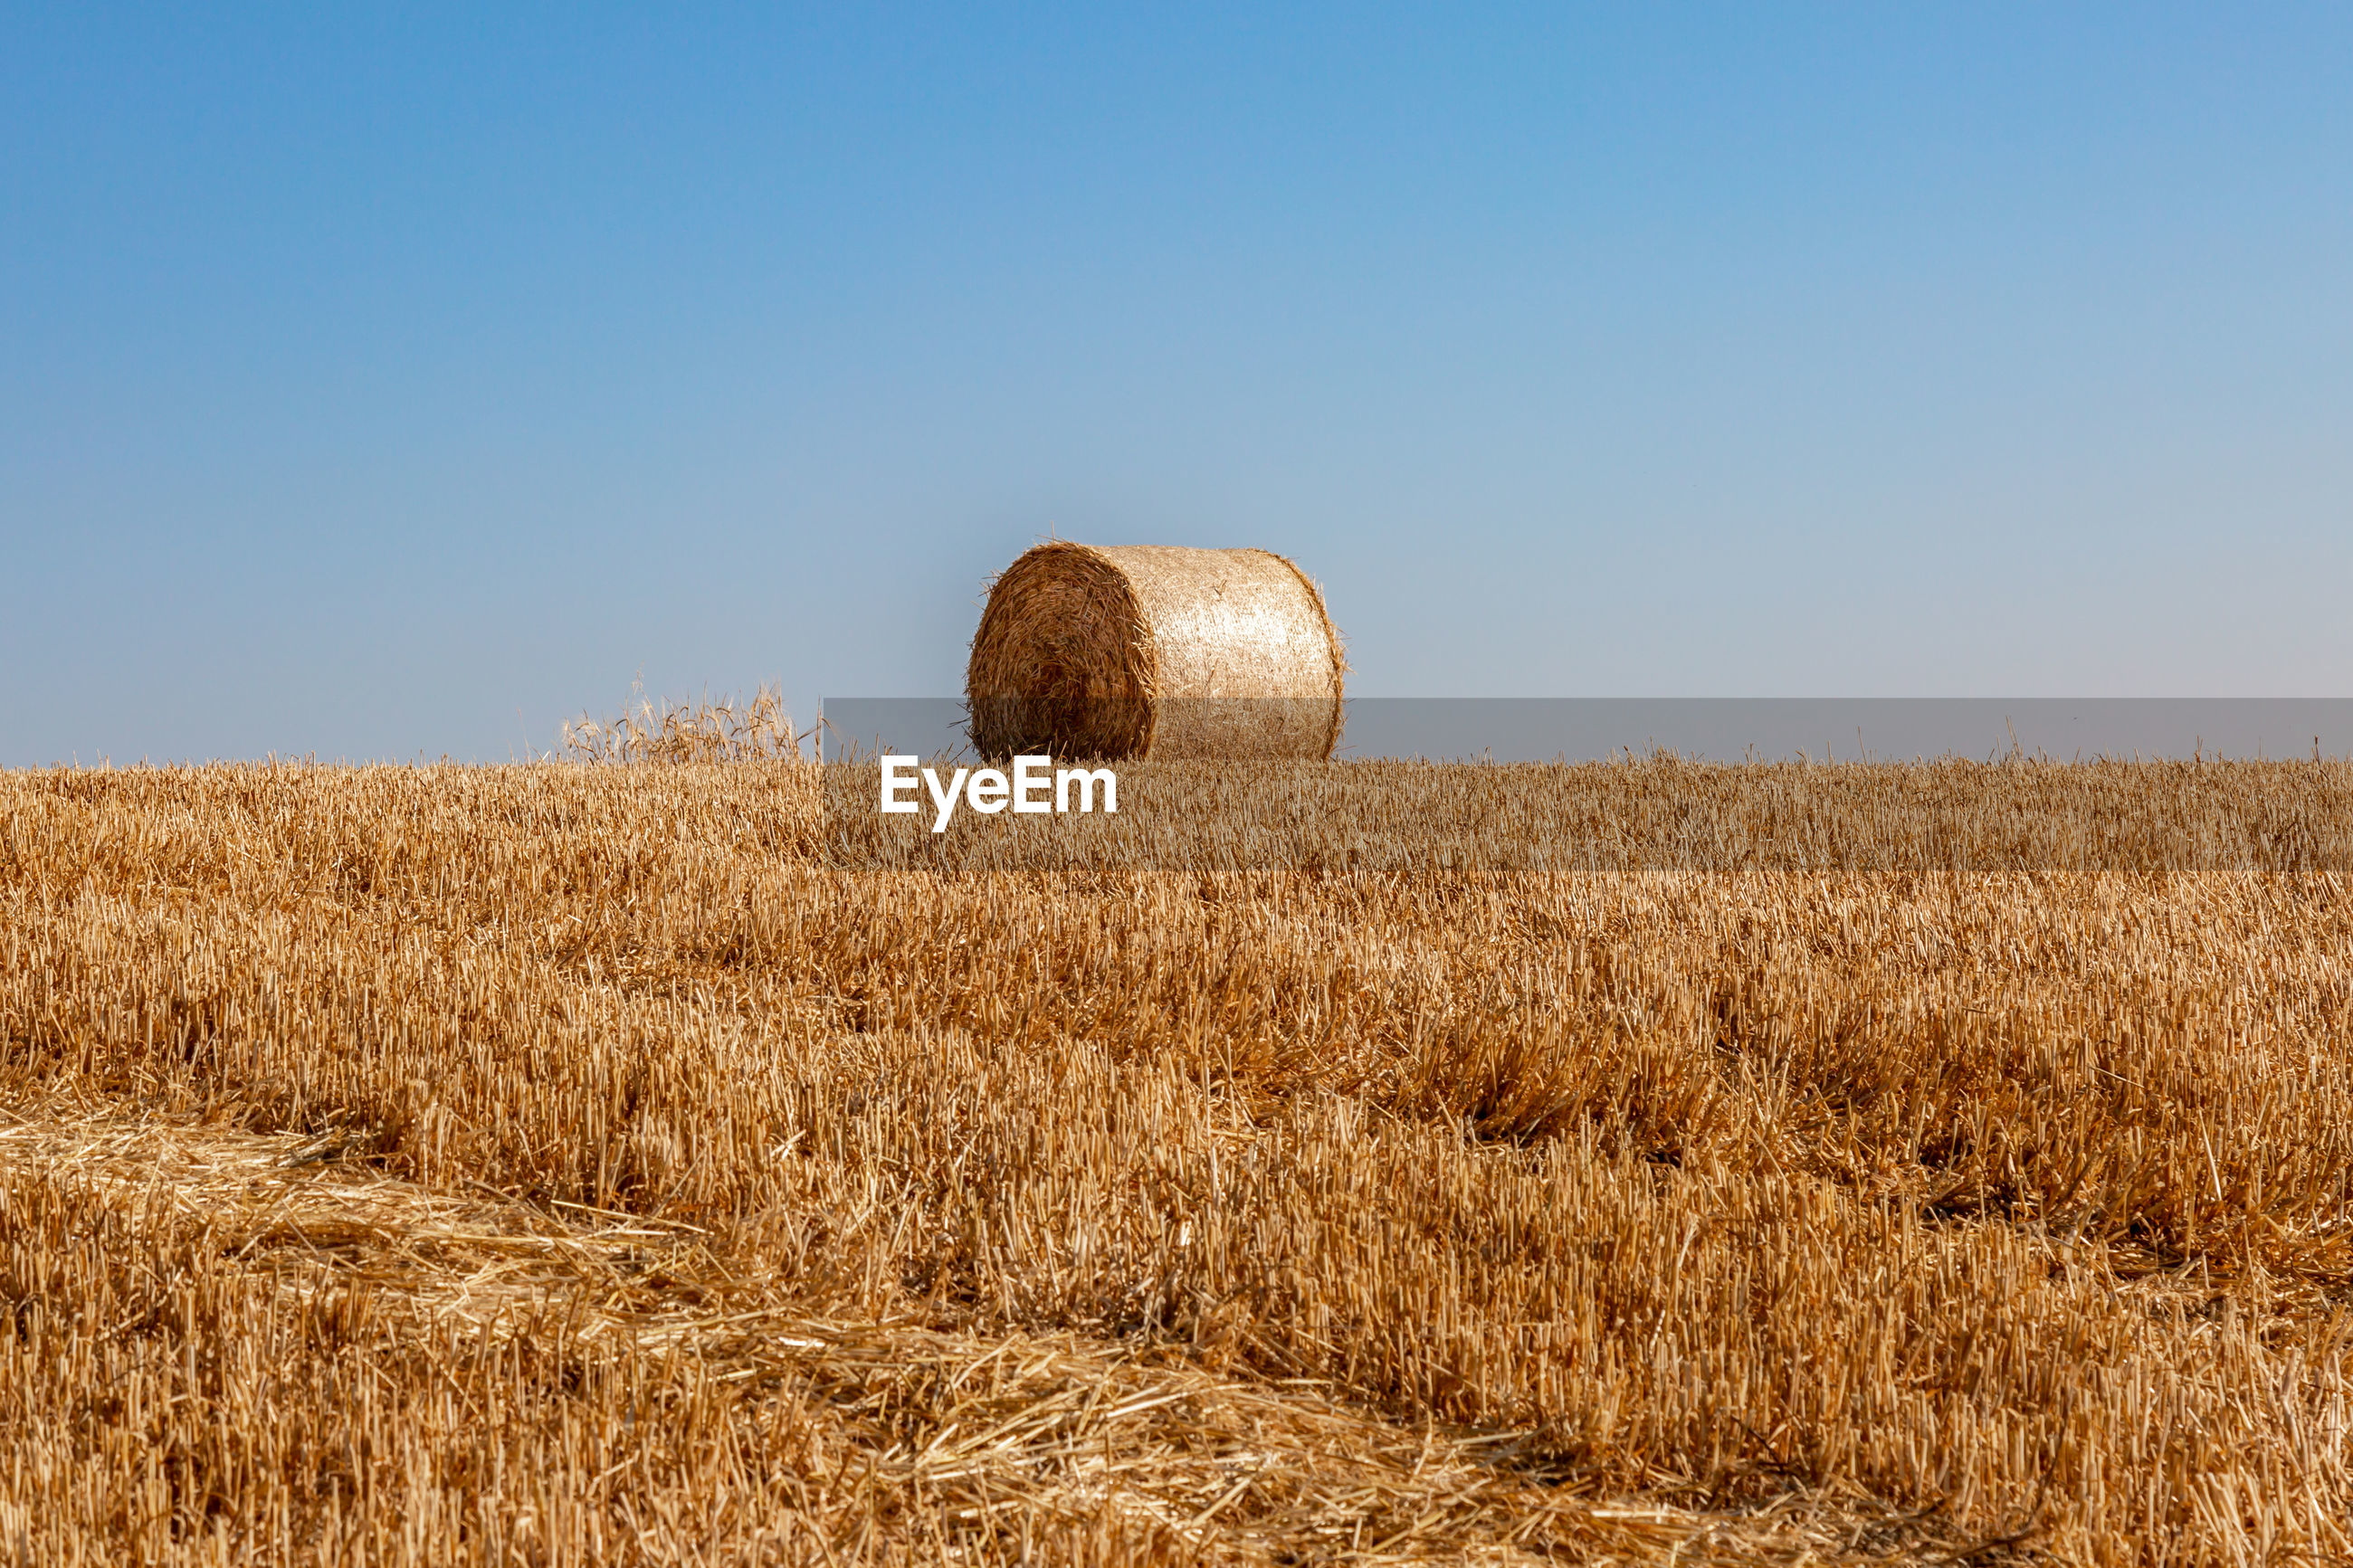 HAY BALE ON FIELD AGAINST CLEAR SKY